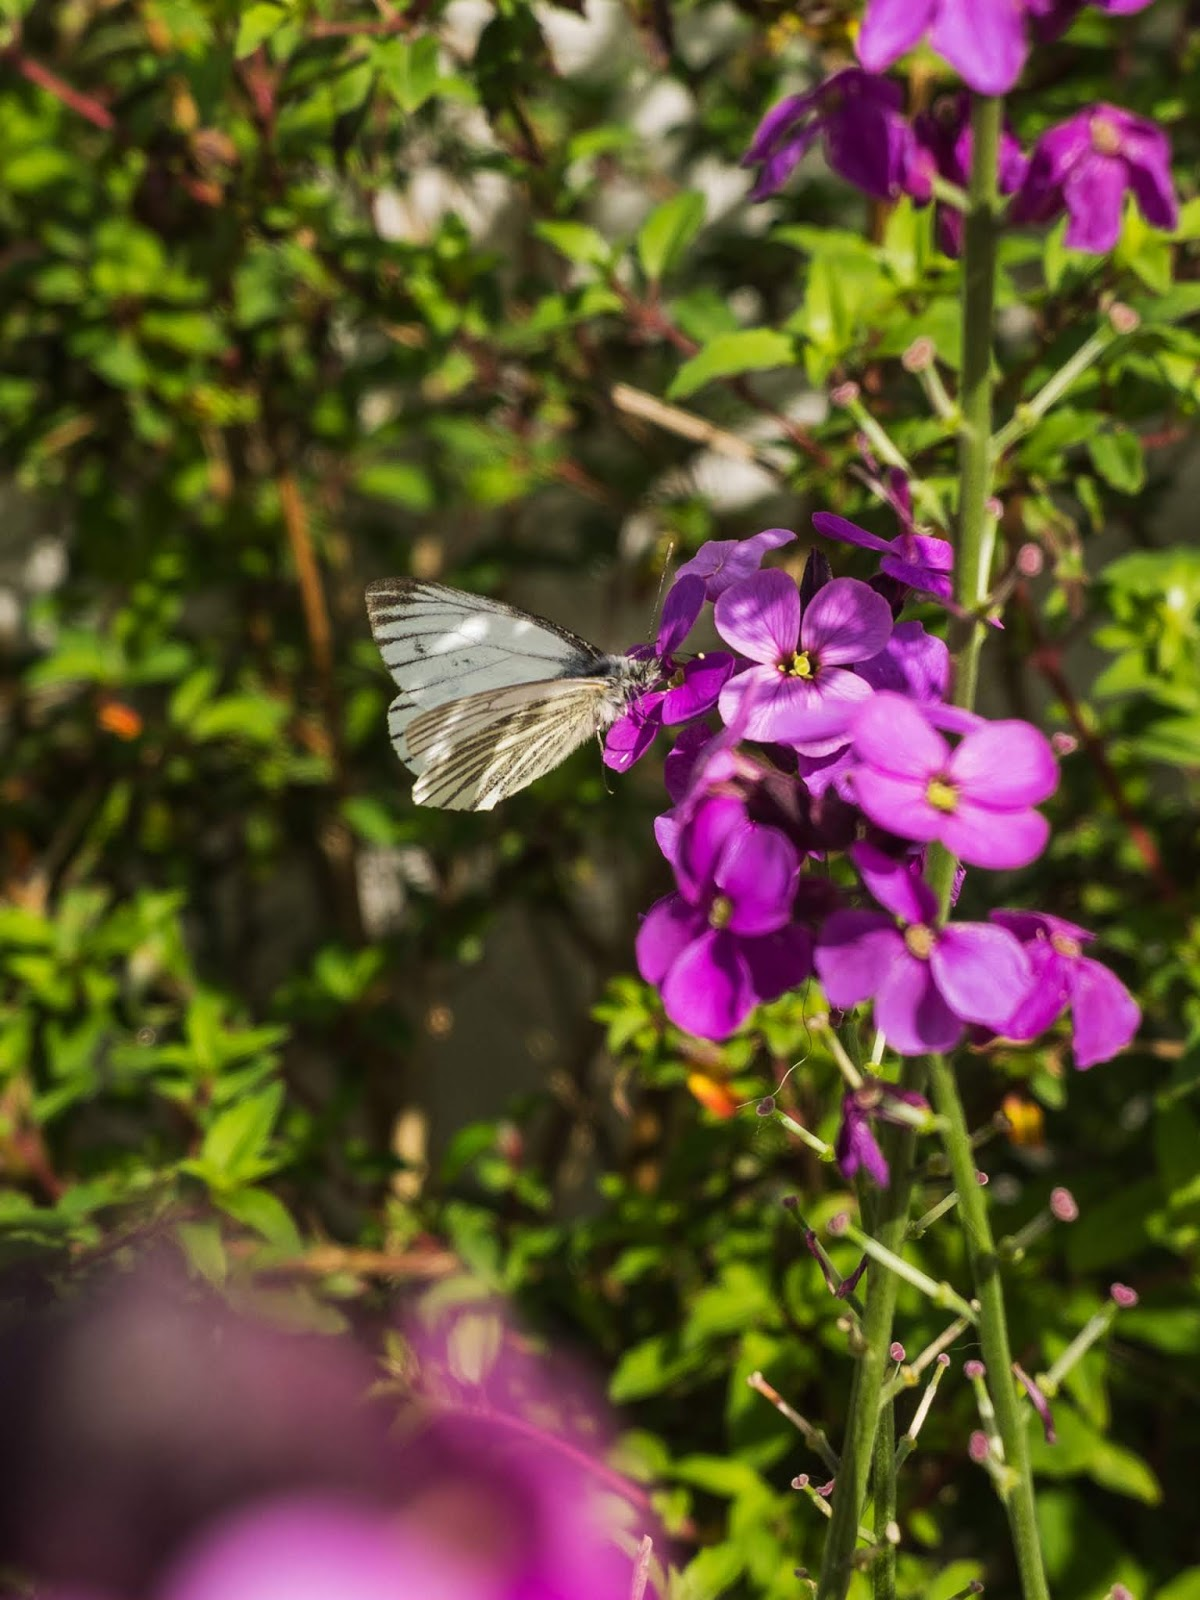 A Small White Butterfly sitting on purple Wallflowers in the sunlight.